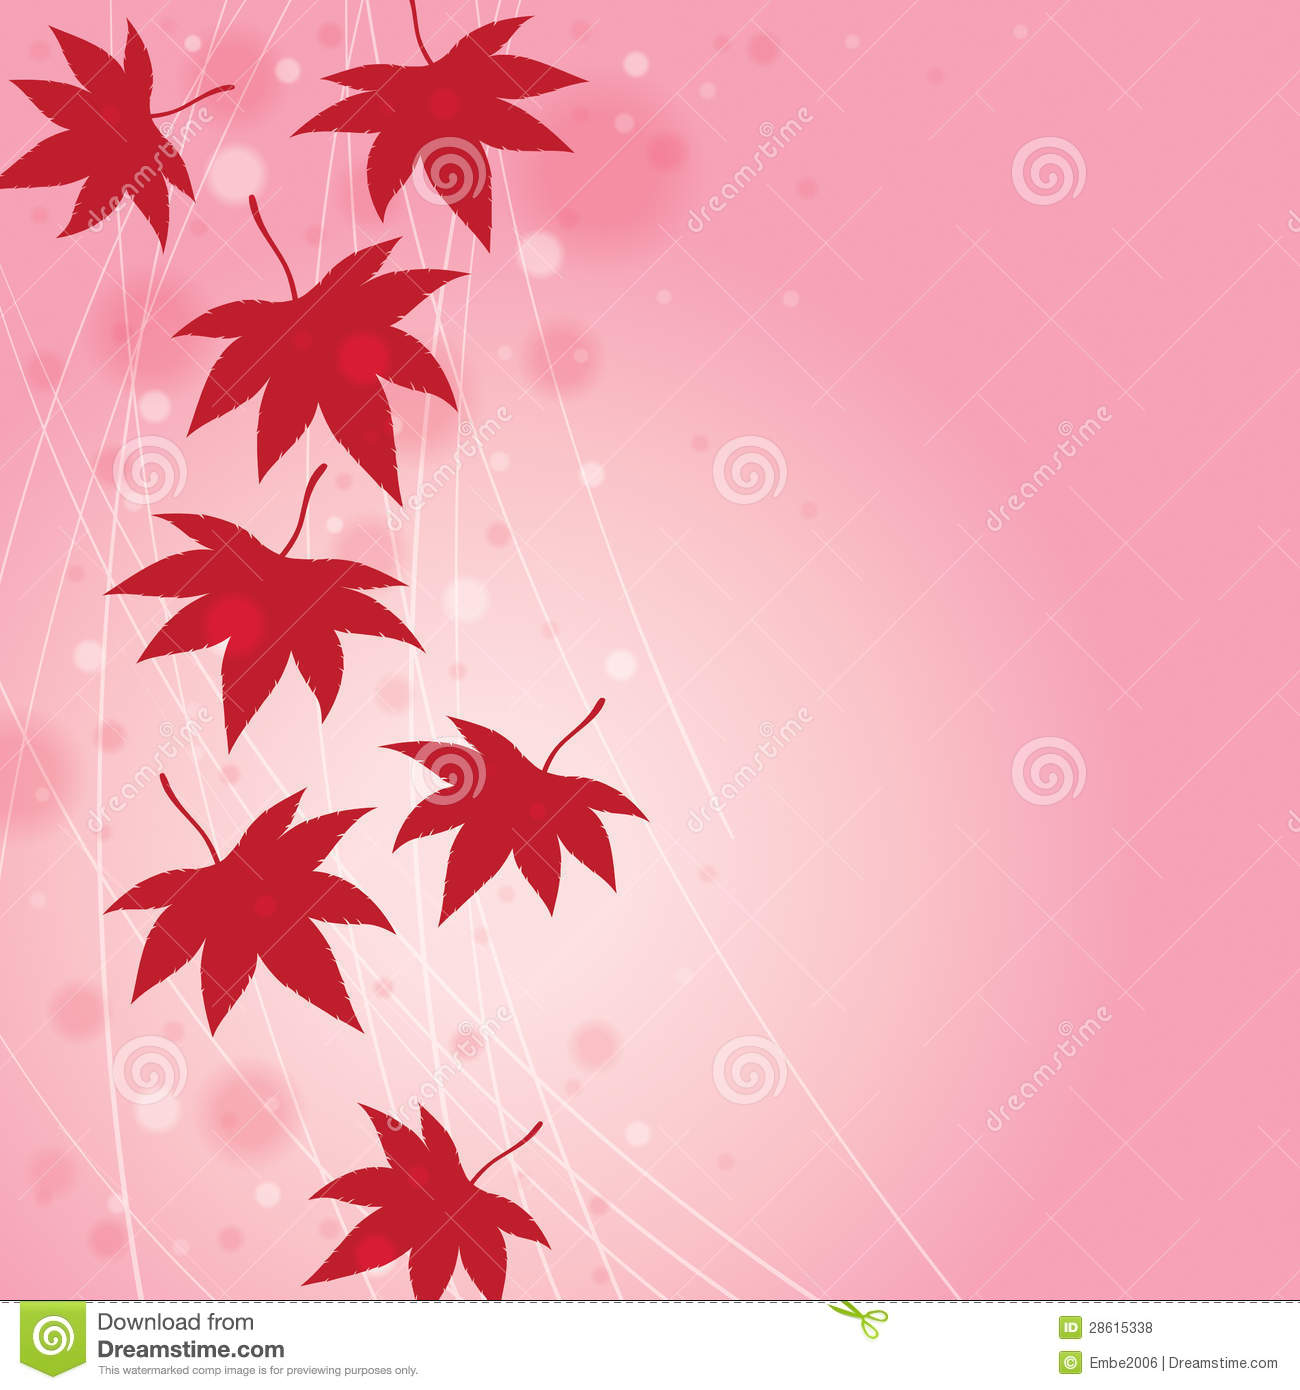 Fall Season Wallpaper Free Fall Leaf Background Stock Vector Image Of Vector Poster